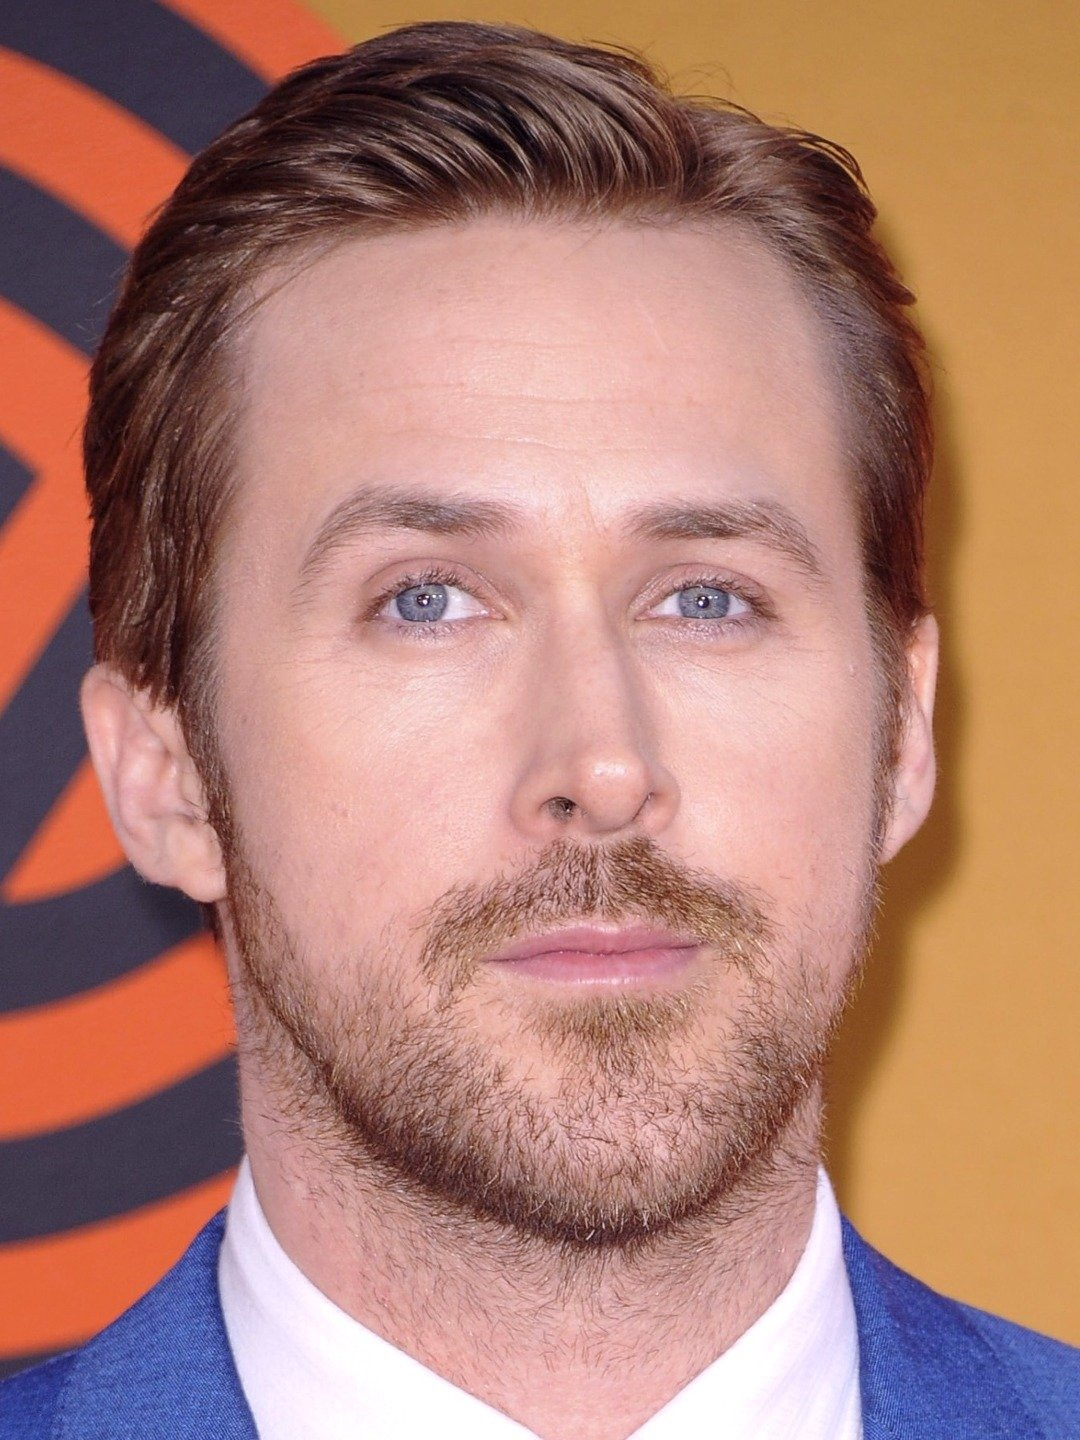 Top 3 Ryan Gosling Hairstyles - Men's Hairstyles